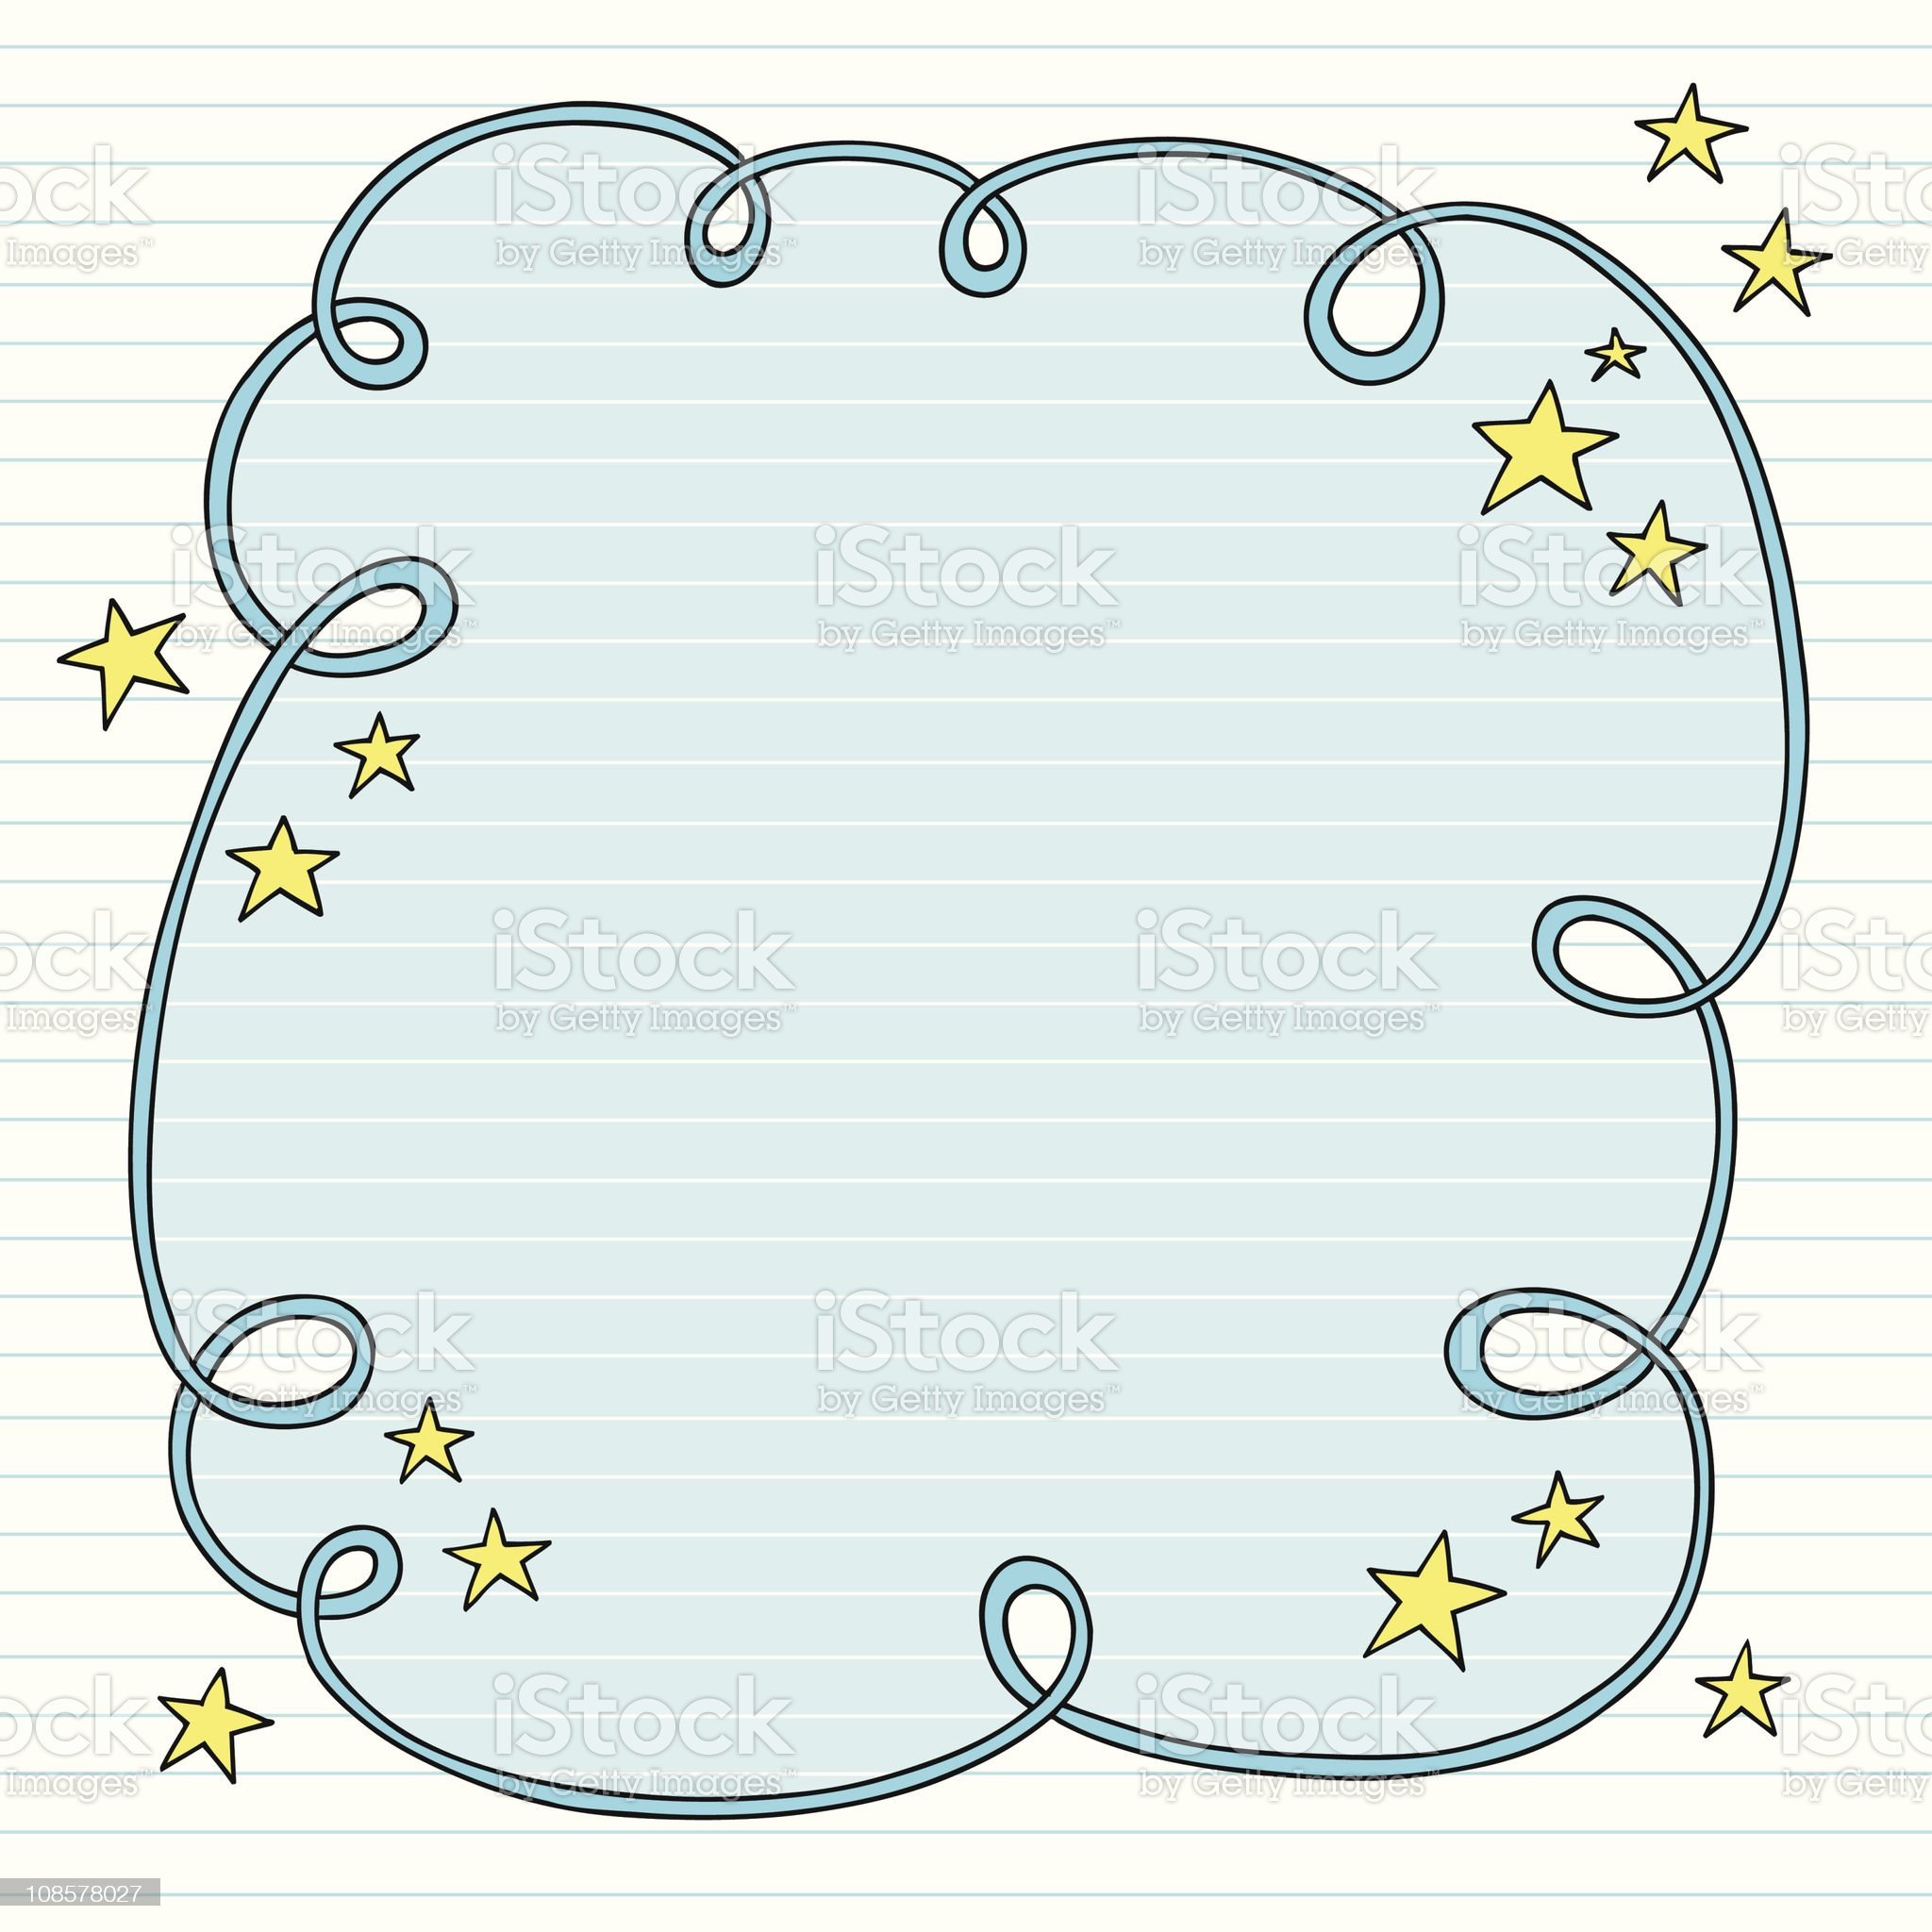 Groovy Notebook Doodle Swirly Border royalty-free stock vector art